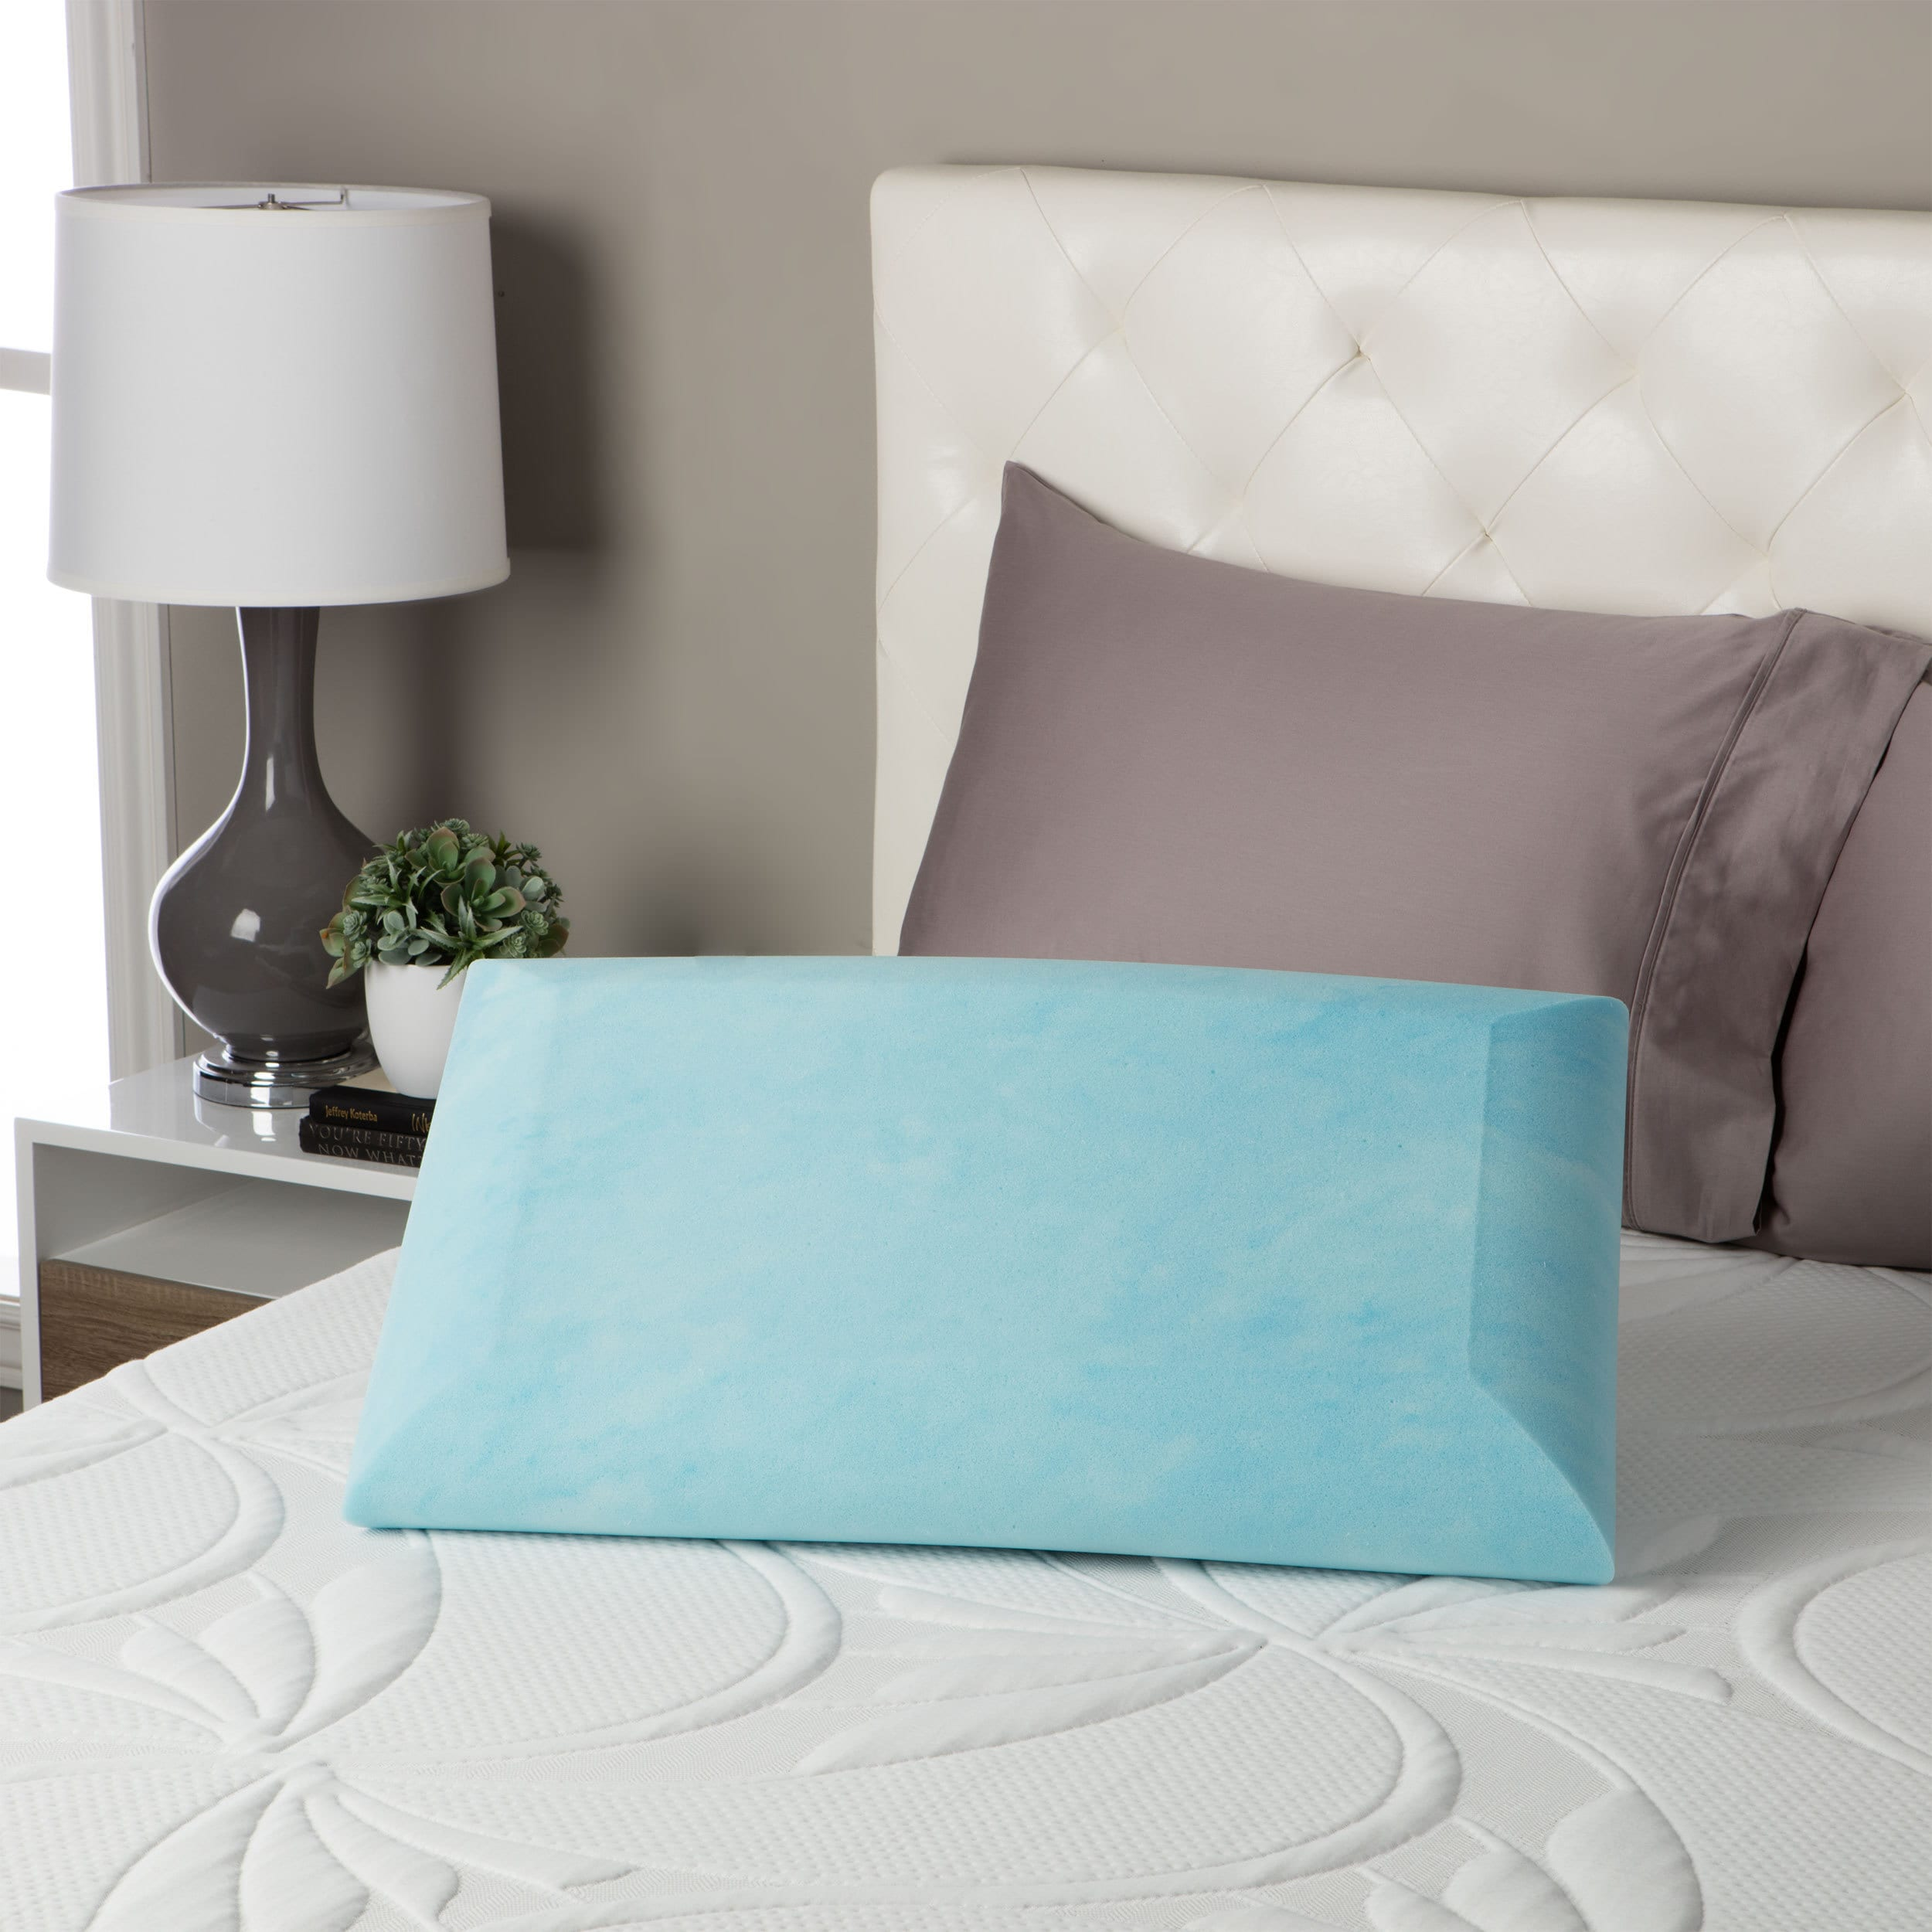 bedding beautyrest pillow over product overstock from foam contour shipping comforpedic on bath memory loft orders free